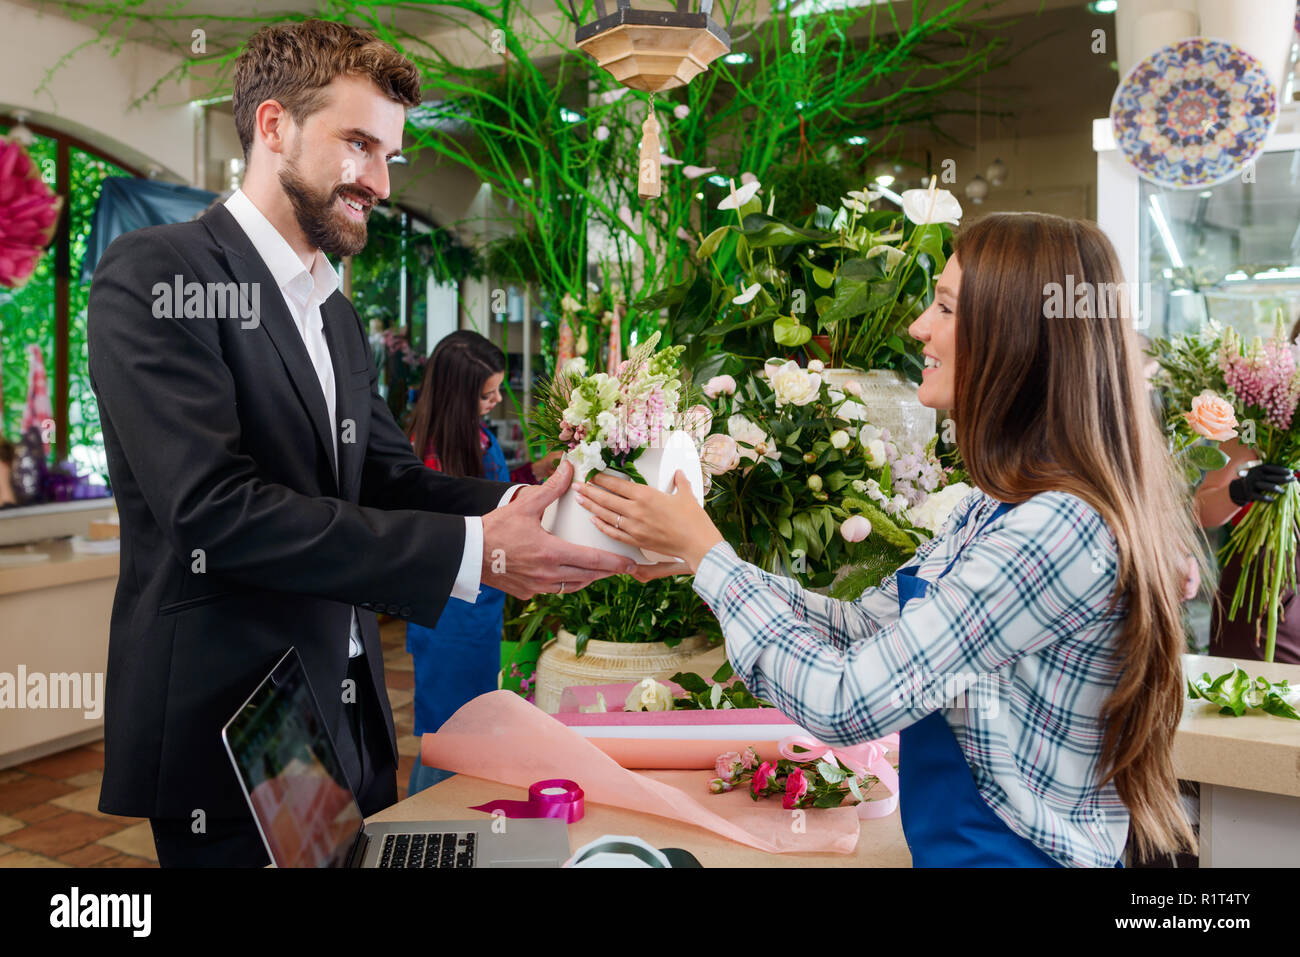 Man bought bouquet - Stock Image